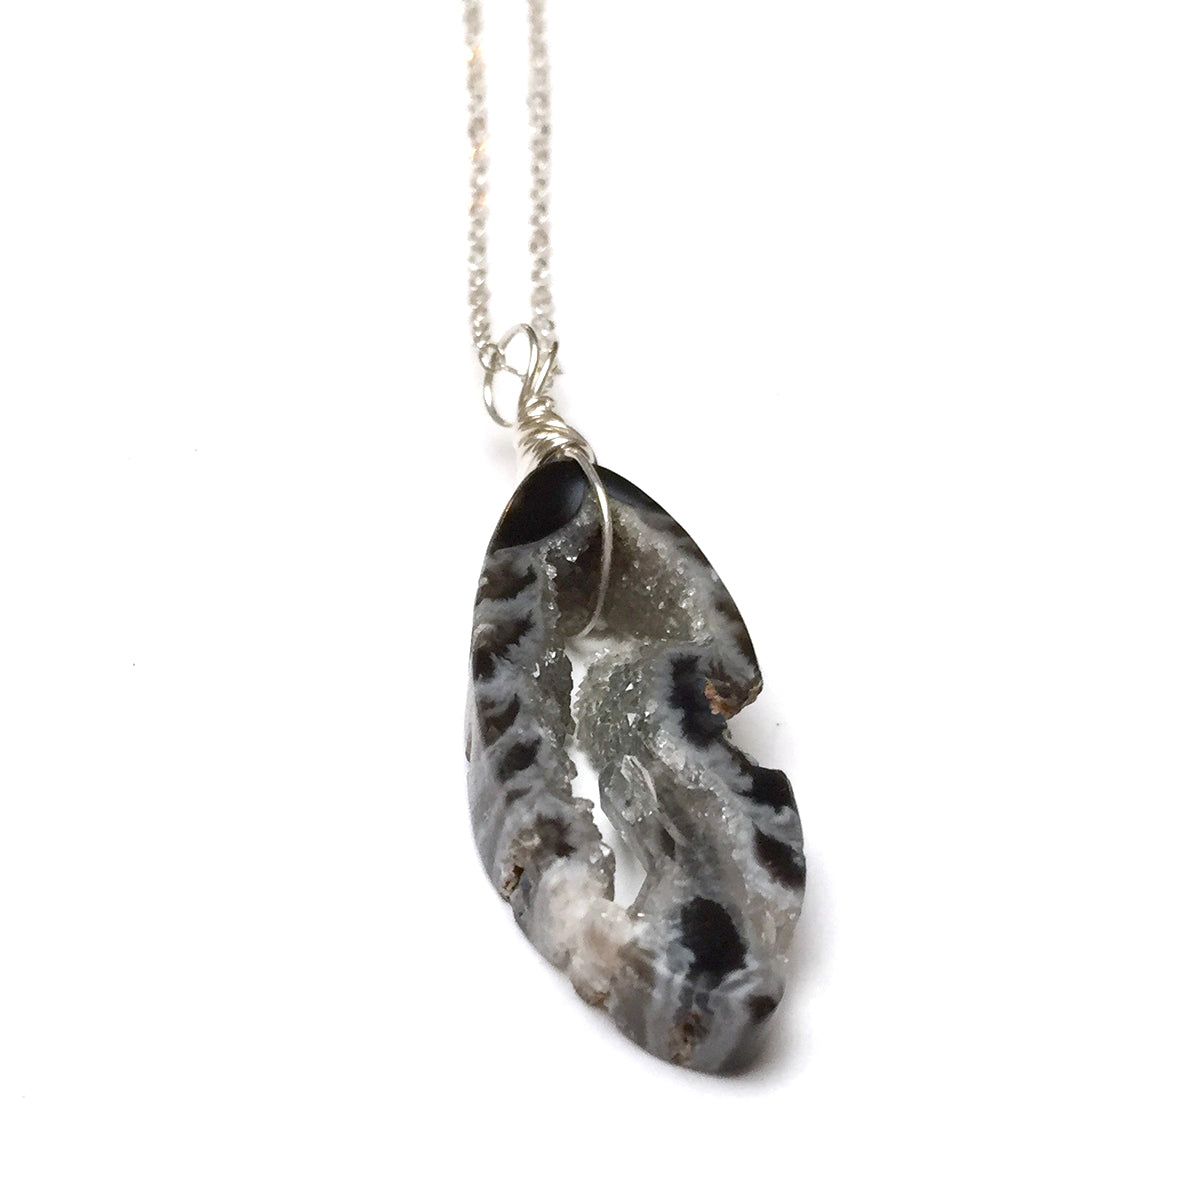 STERLING SILVER AGATE DRUZY NECKLACE - STRENGTHEN MY SPIRIT TALISMAN